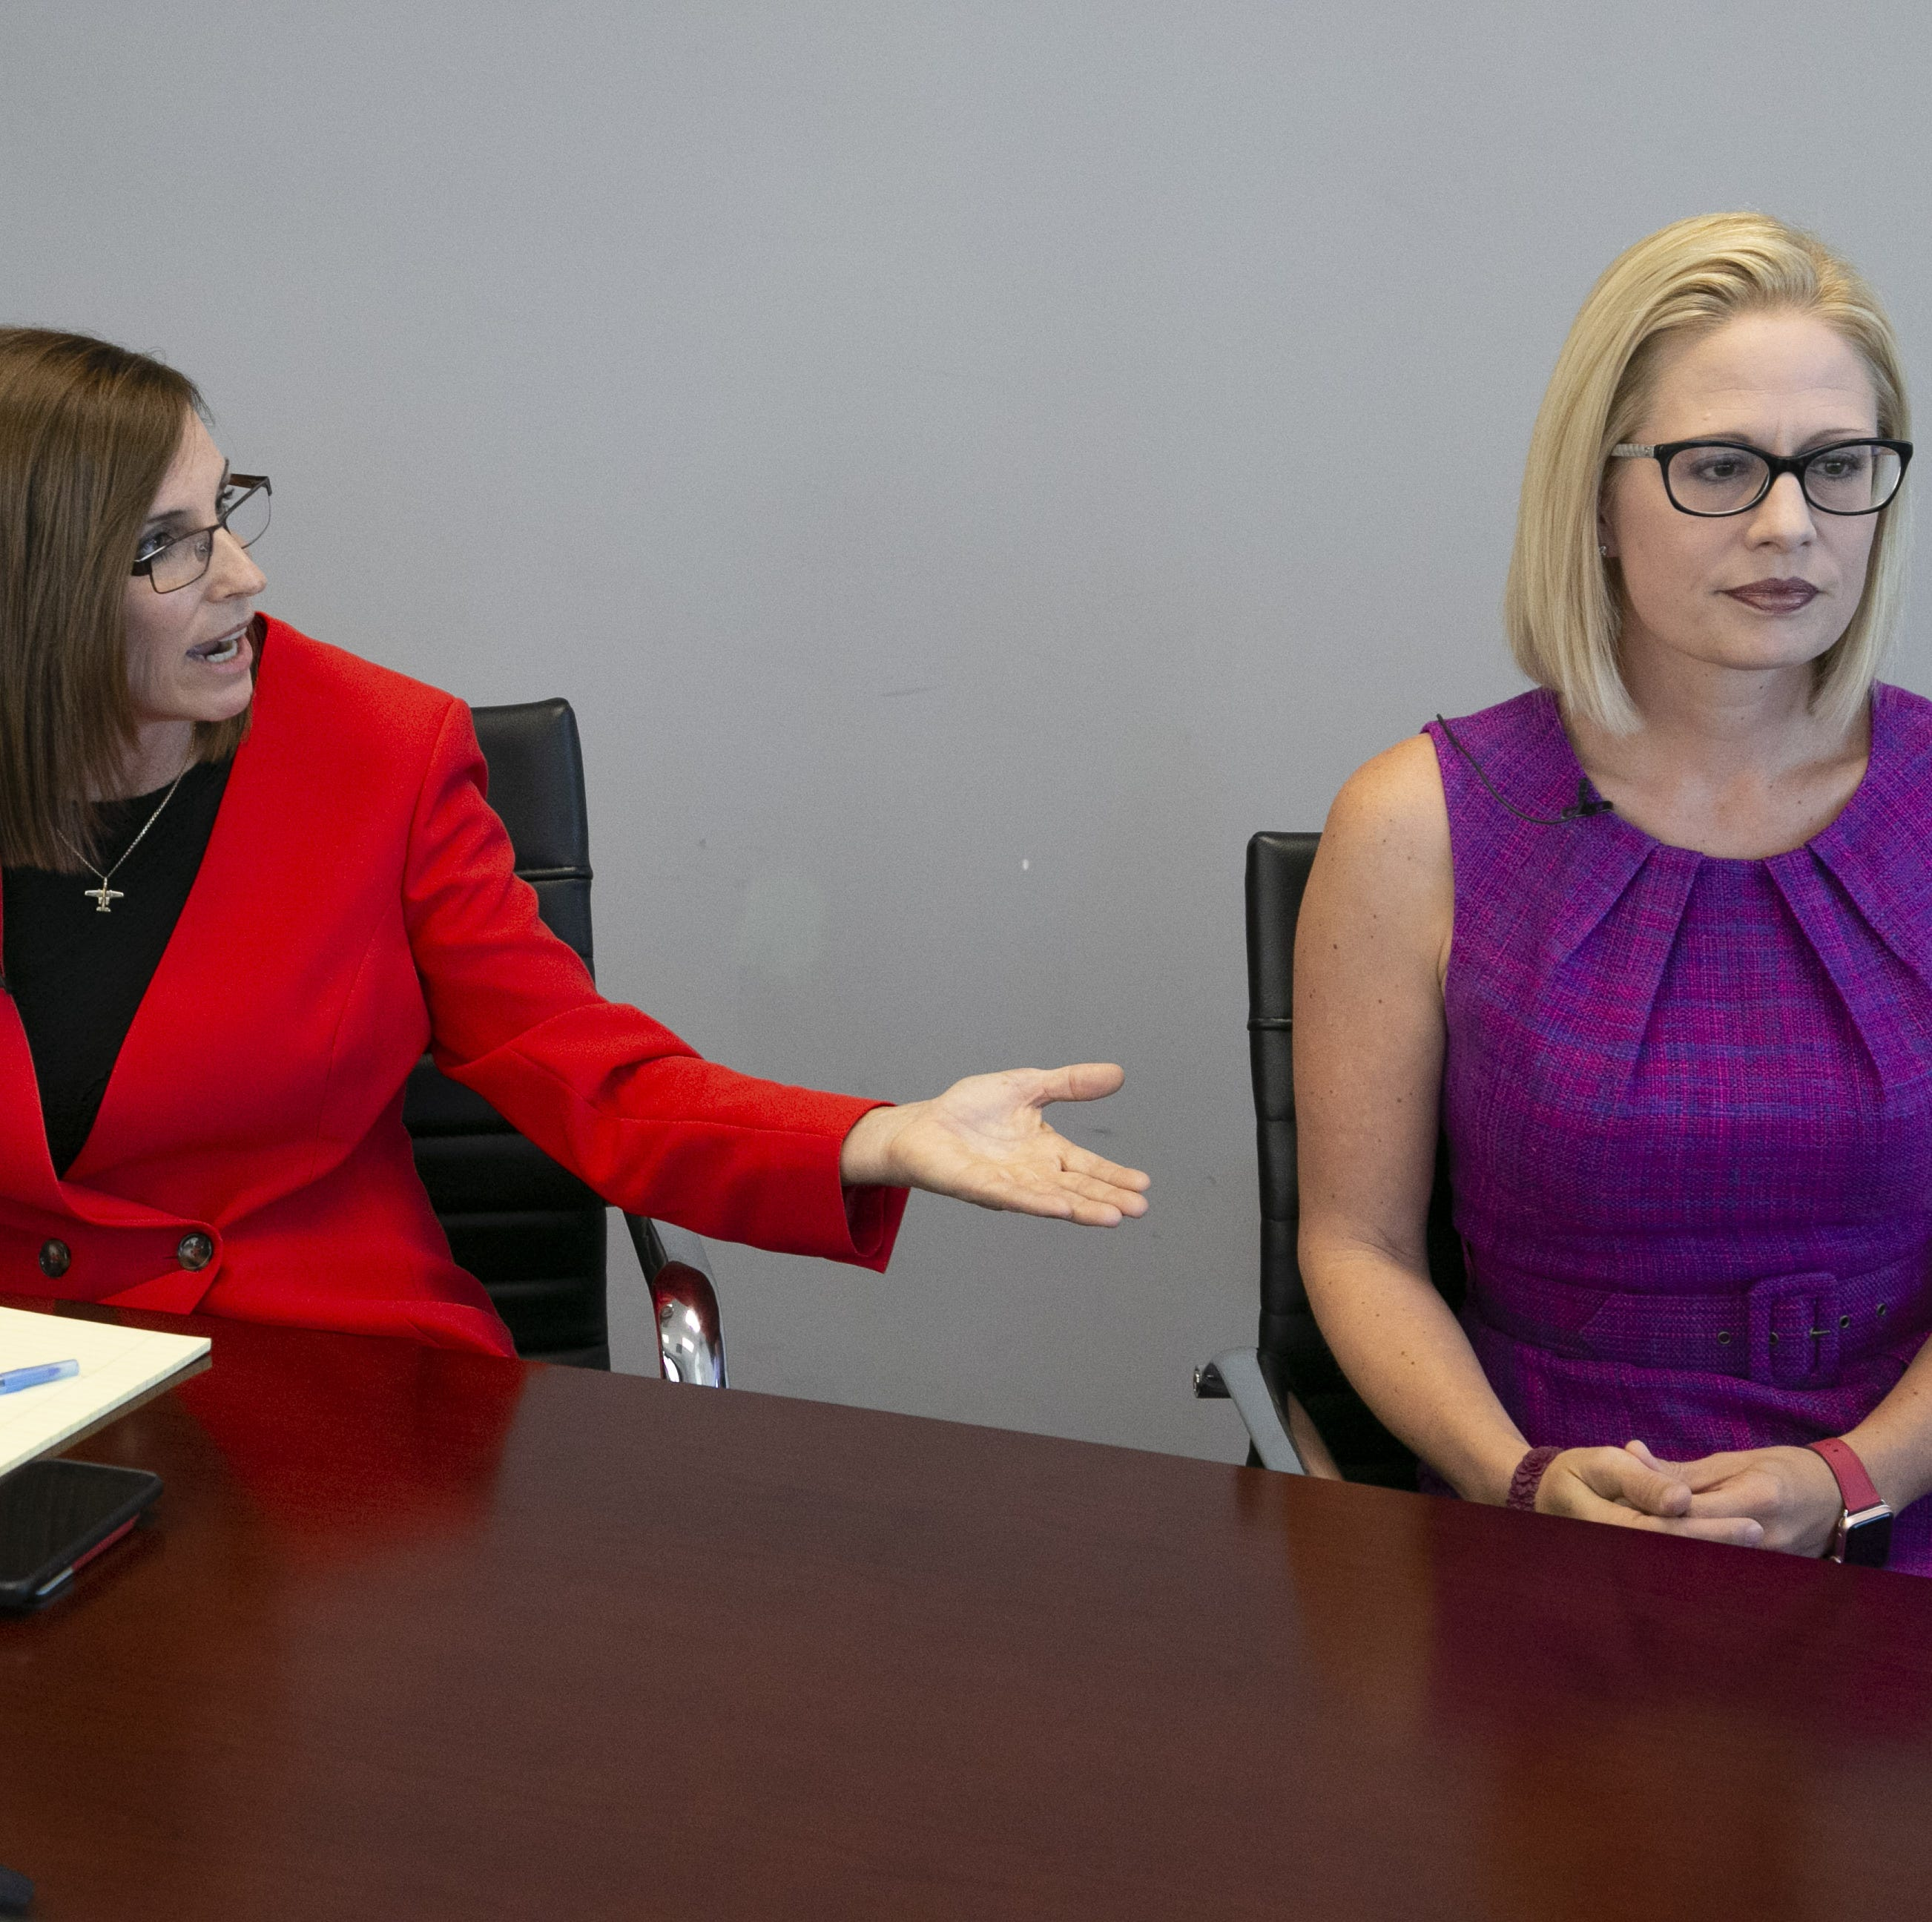 Martha McSally, Kyrsten Sinema battle over 'treason,' campaign tone